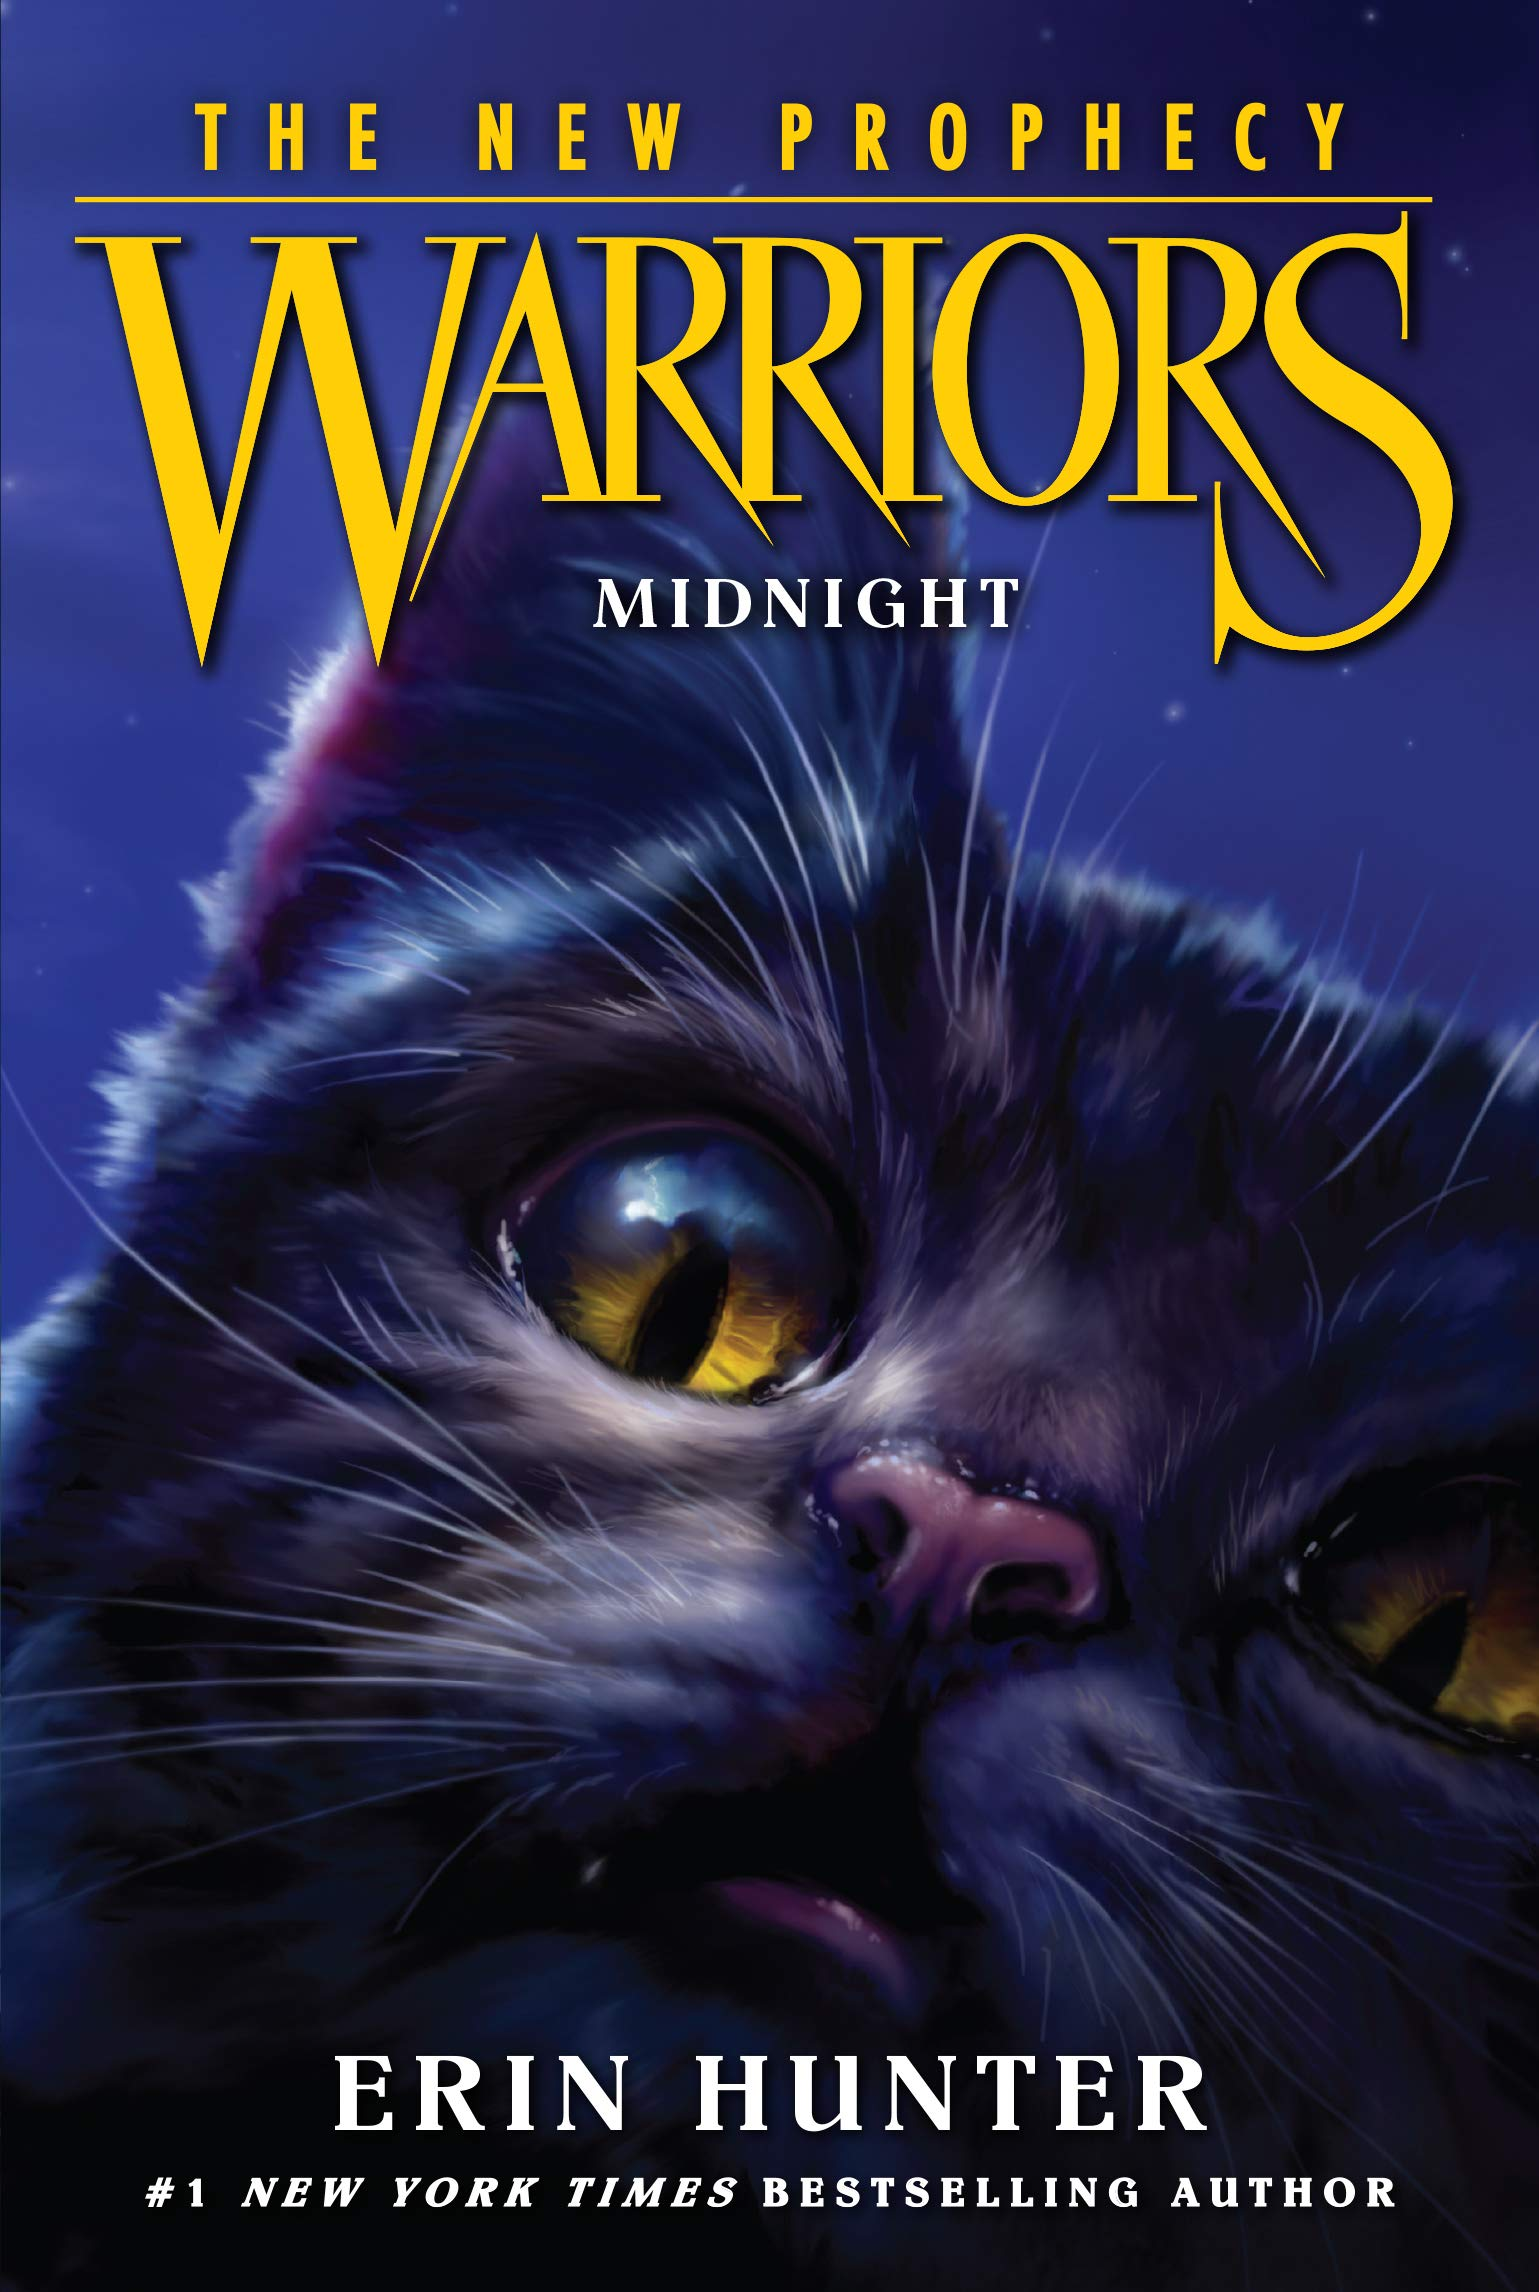 Warriors: The New Prophecy #1: Midnight: Erin Hunter, Dave